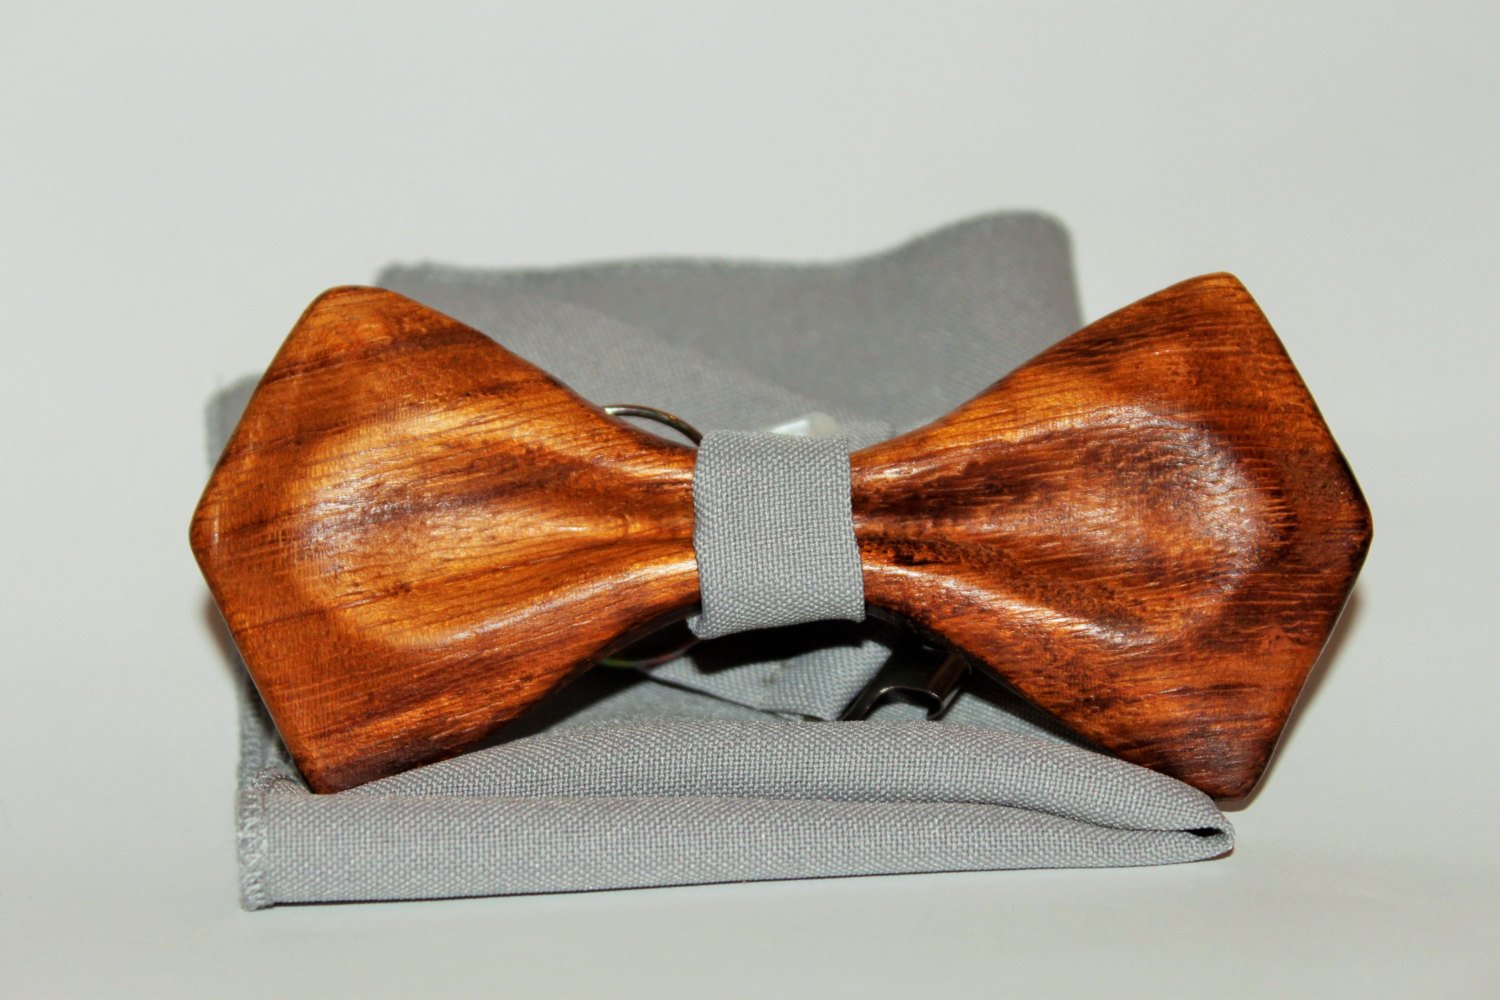 Wood bow tie with unique design. Wooden bow tie best gift for men, husband and friend.